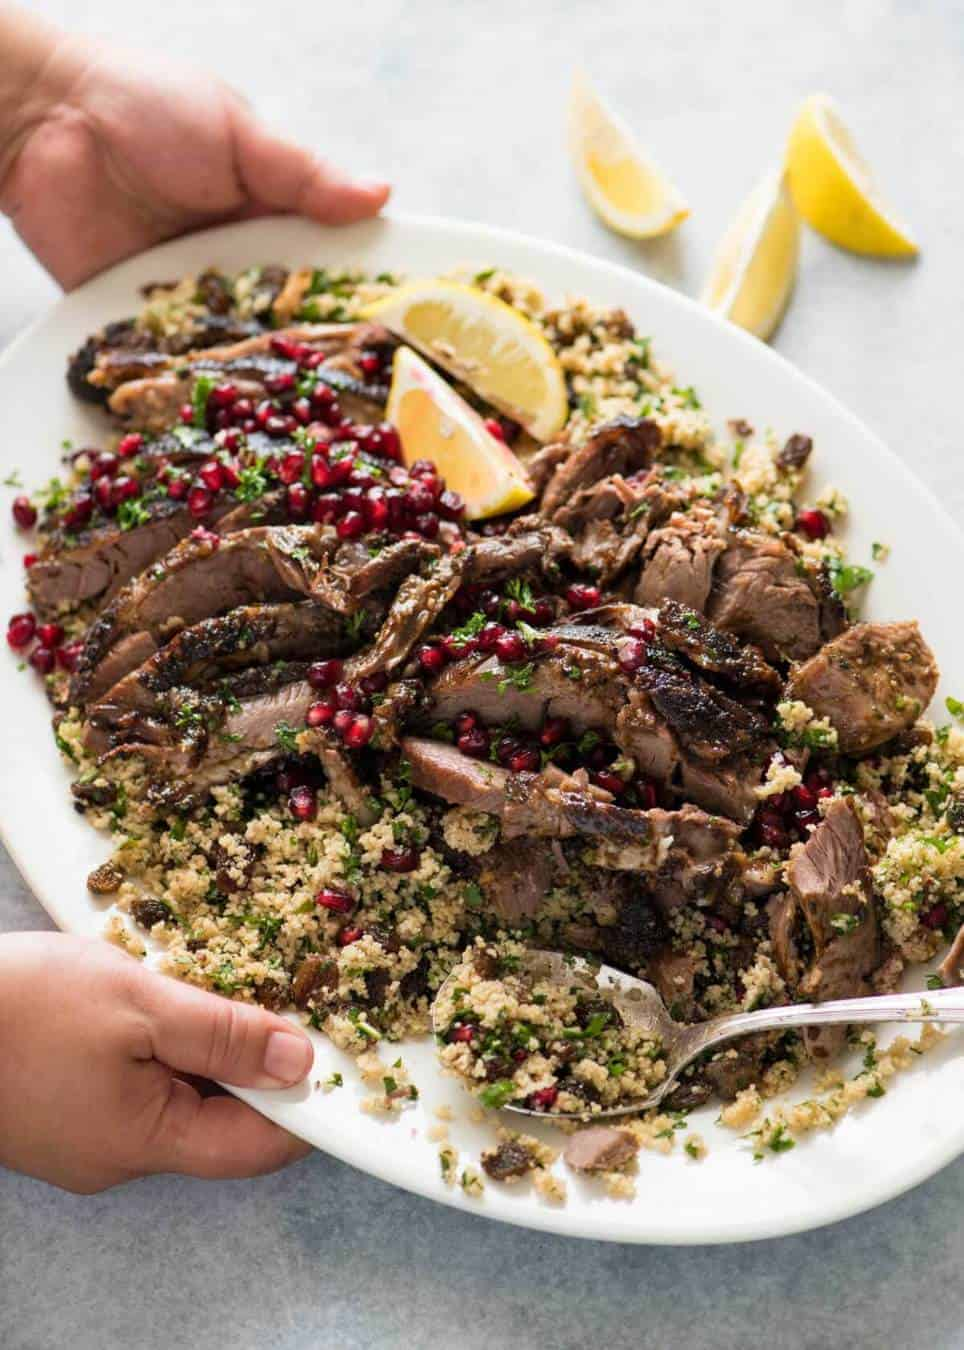 Tender slow cooked Lamb Shawarma cut into slices, piled on top of a herb couscous on a large white platter, garnished with pomegranate seeds and lemon wedges.